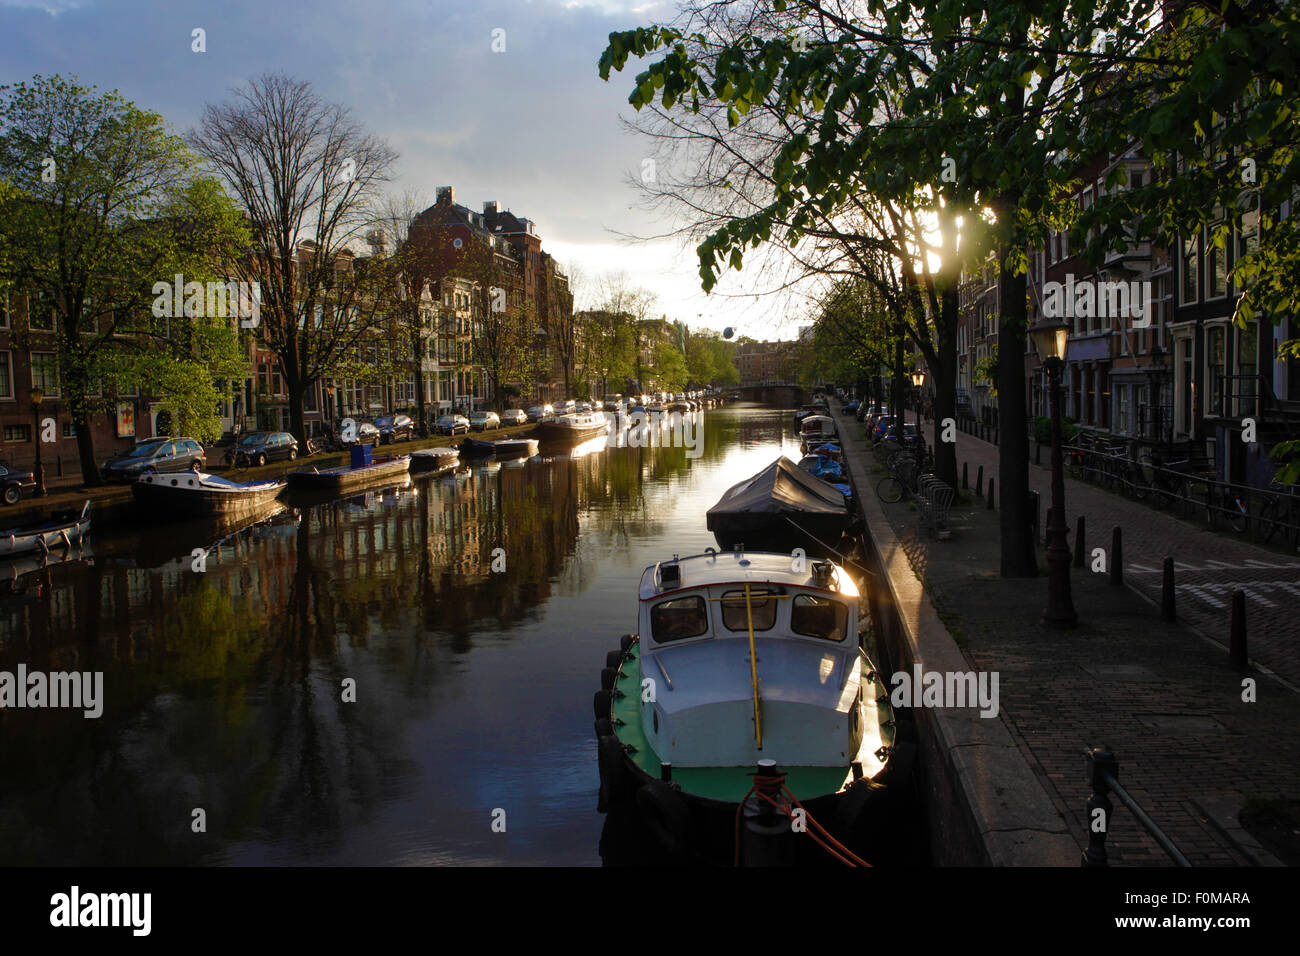 Prinsengracht canal in Amsterdam by Alex Robinson - Stock Image